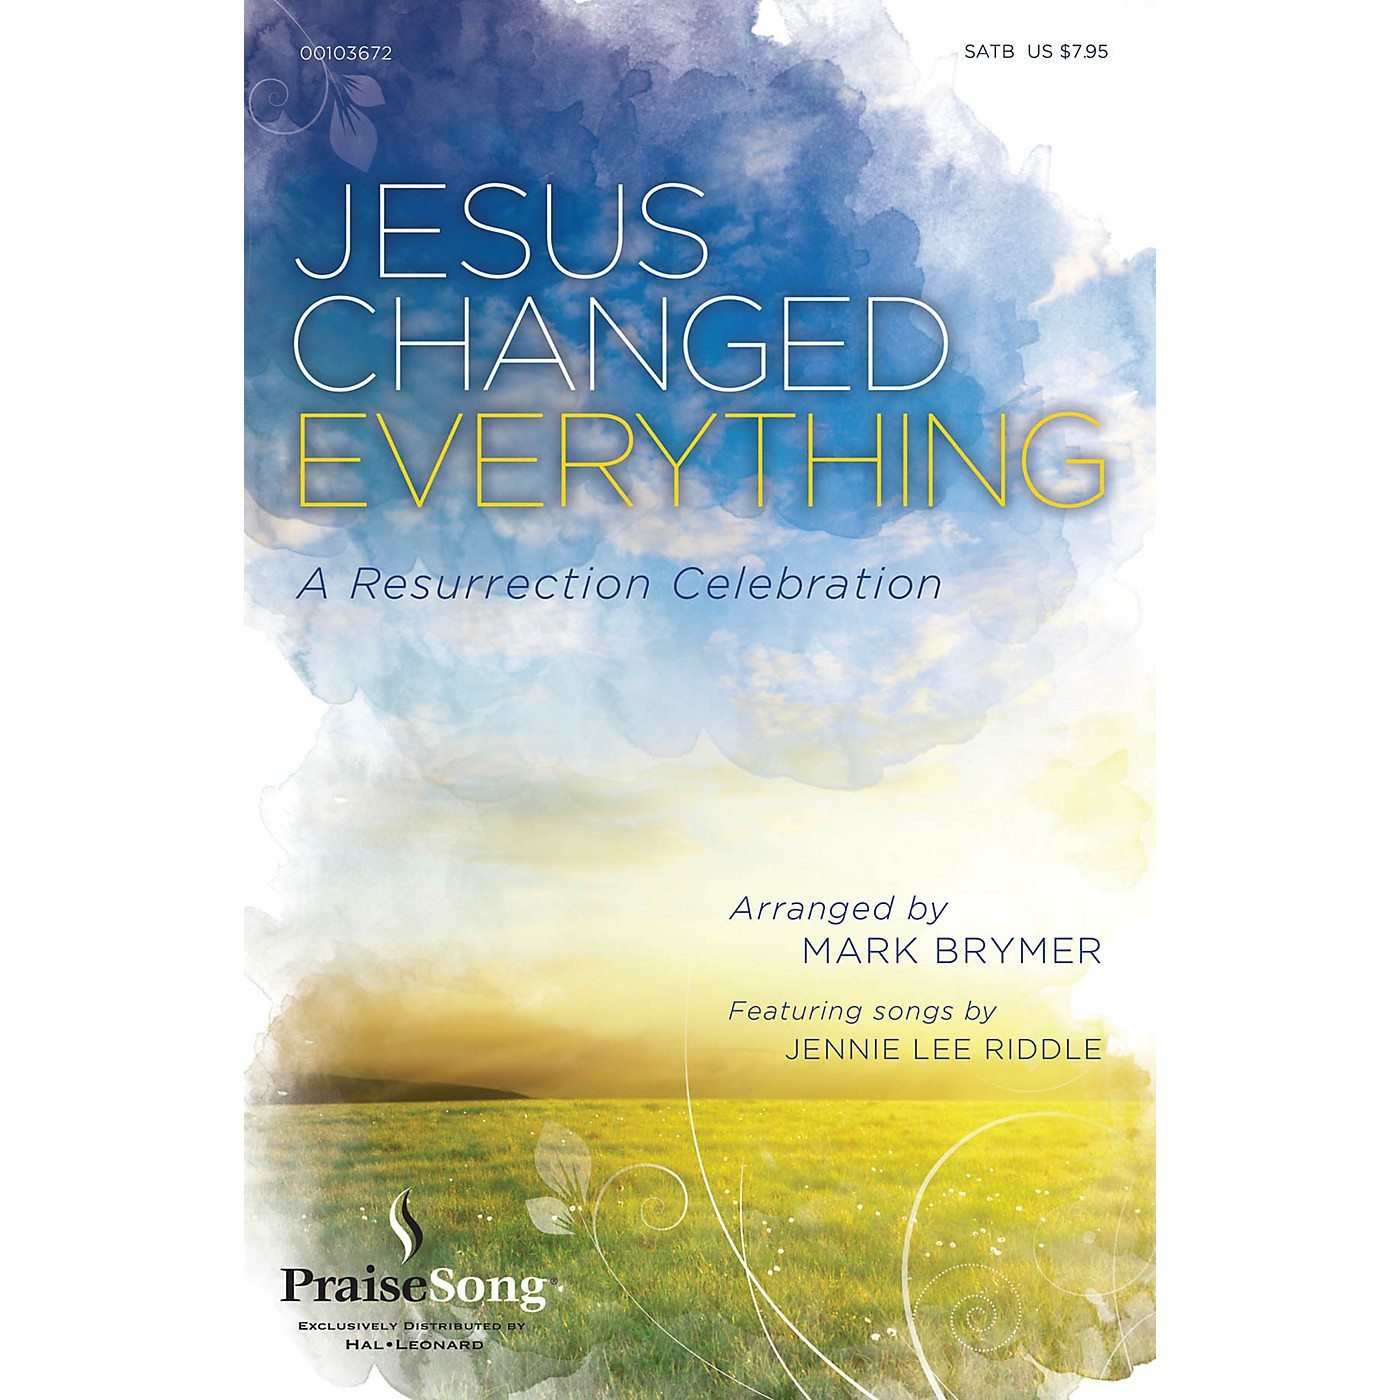 PraiseSong Jesus Changed Everything (Featuring songs by Jennie Lee Riddle) PREV CD PAK Arranged by Mark Brymer thumbnail